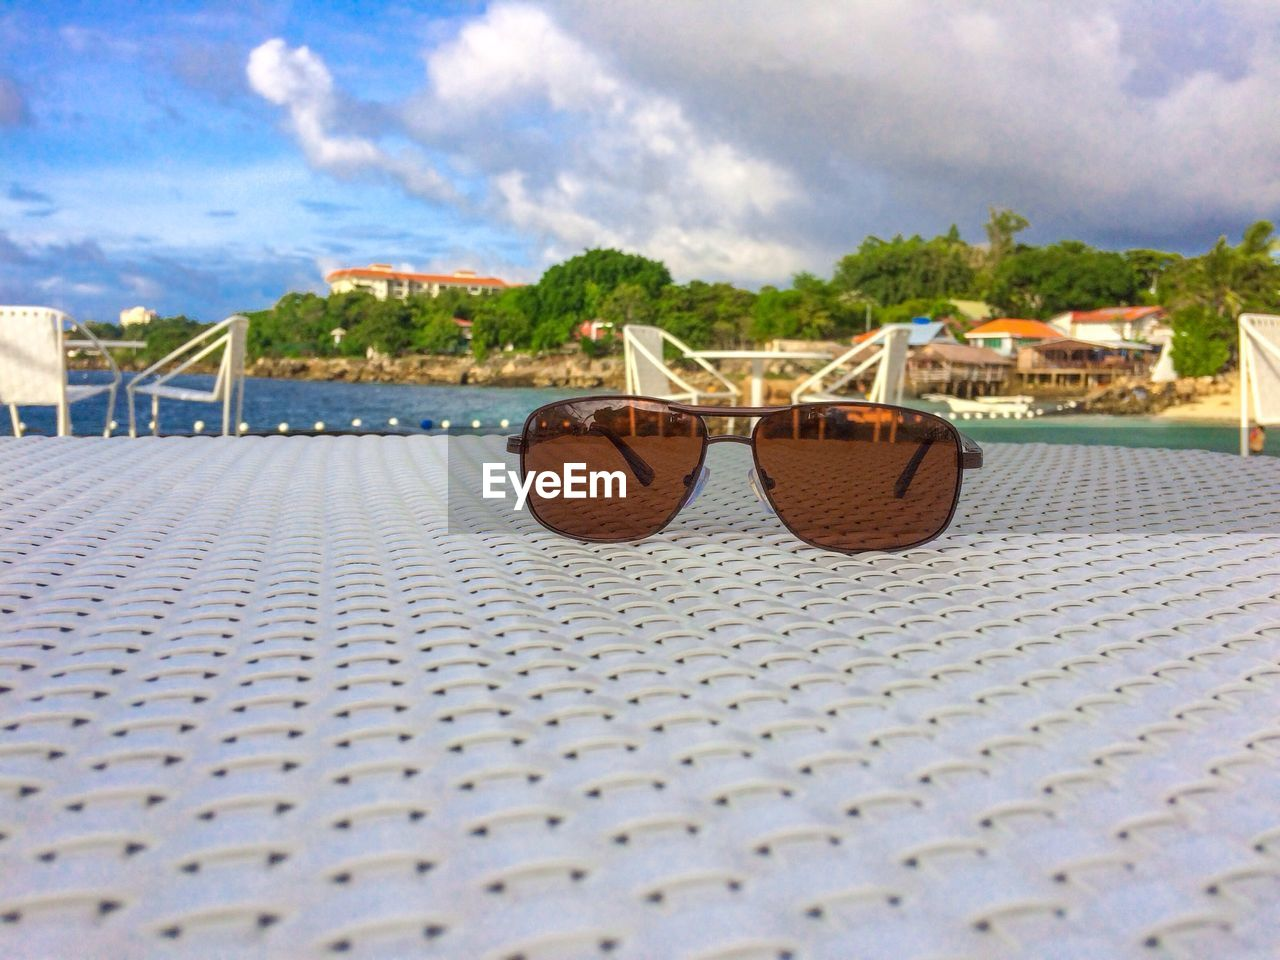 cloud - sky, sky, sunglasses, fashion, architecture, day, glasses, nature, no people, built structure, outdoors, beach, table, chair, building exterior, seat, summer, close-up, sunlight, surface level, swimming pool, personal accessory